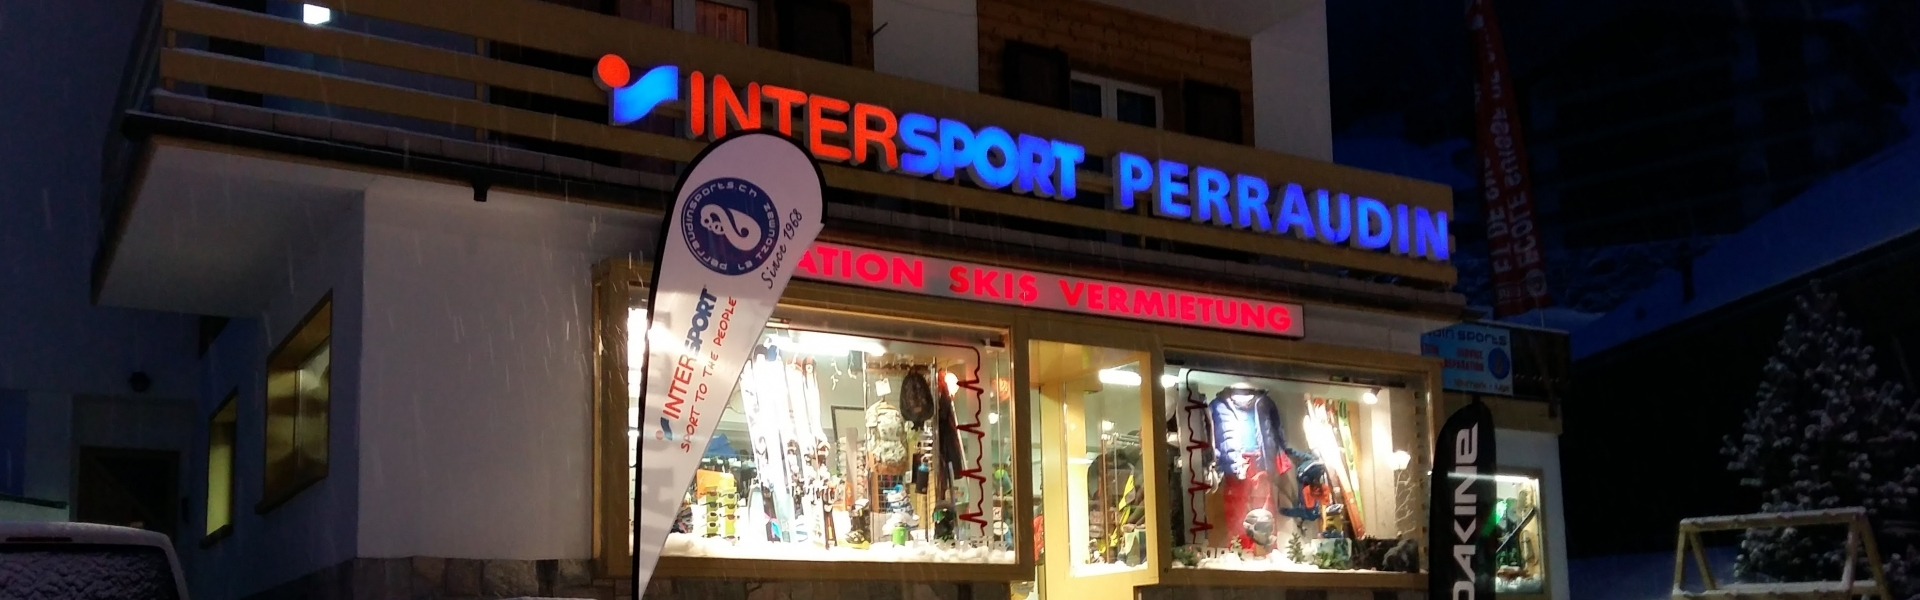 Intersport Slider Image